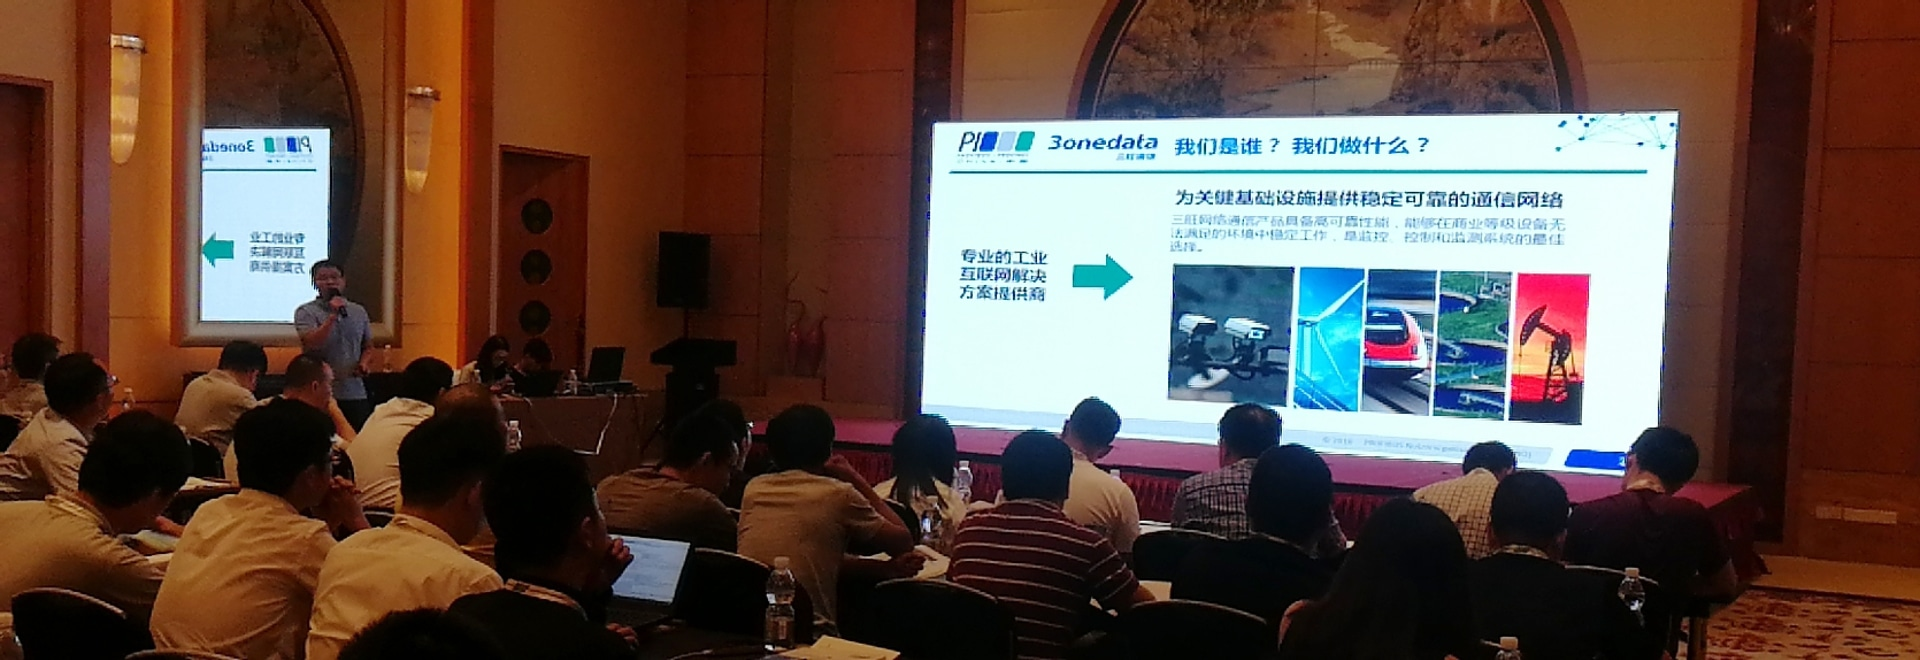 3onedata Participates in the PROFINET Technical Seminar